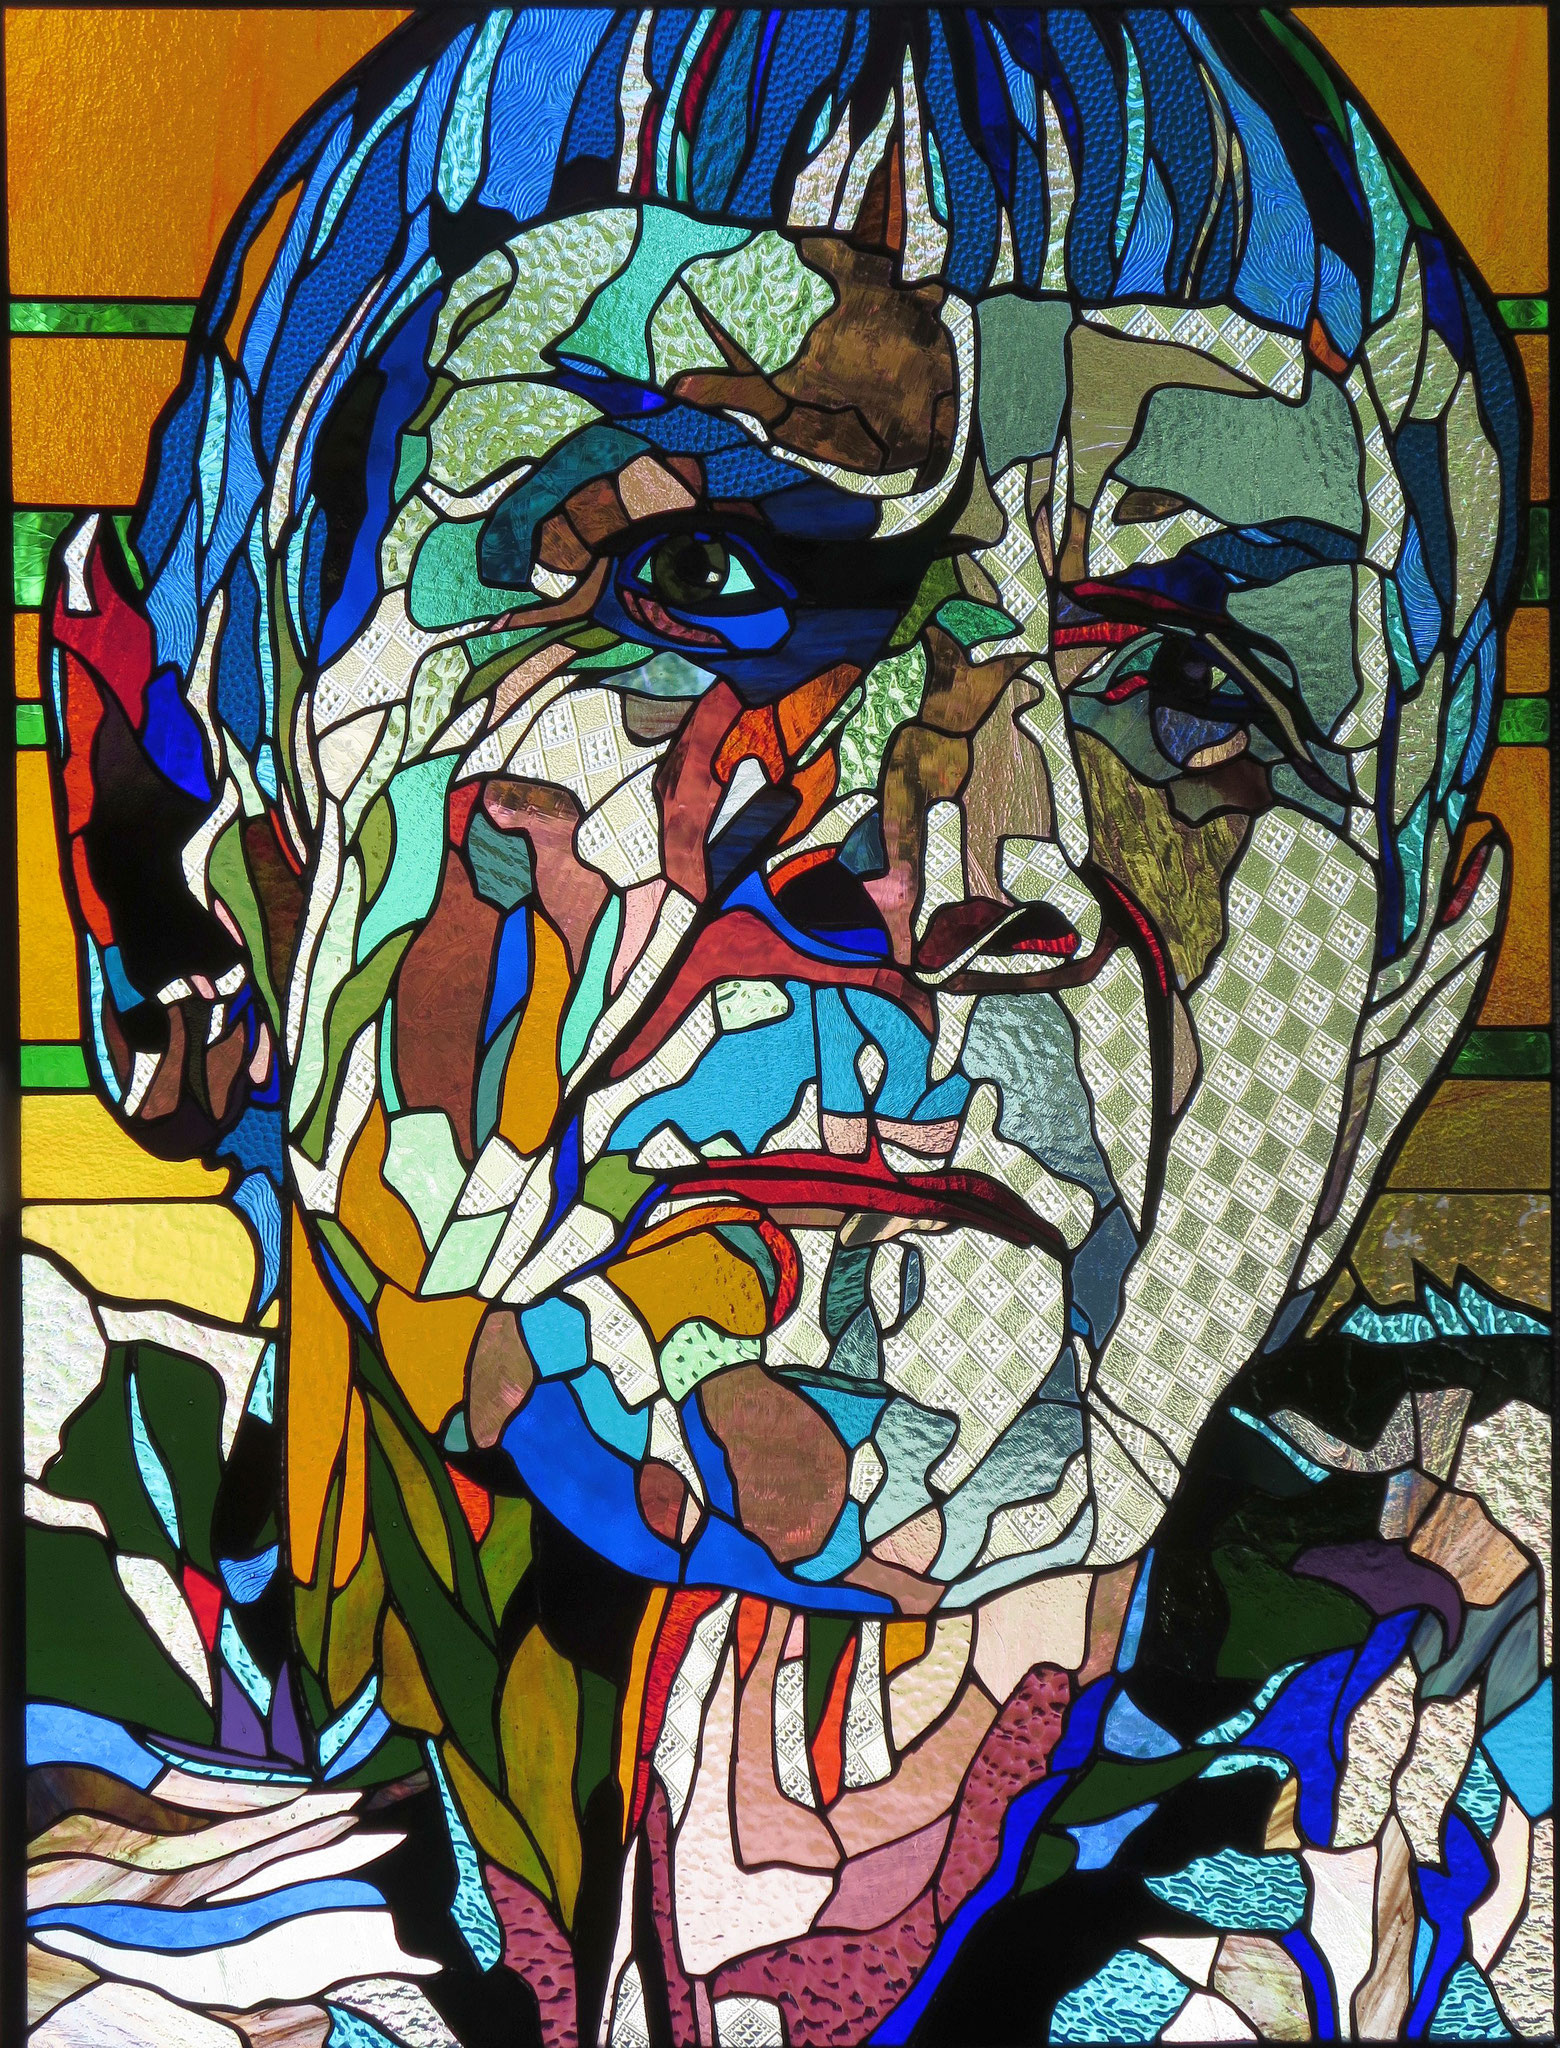 SPOCK 26 x 34.5 inches stained glass